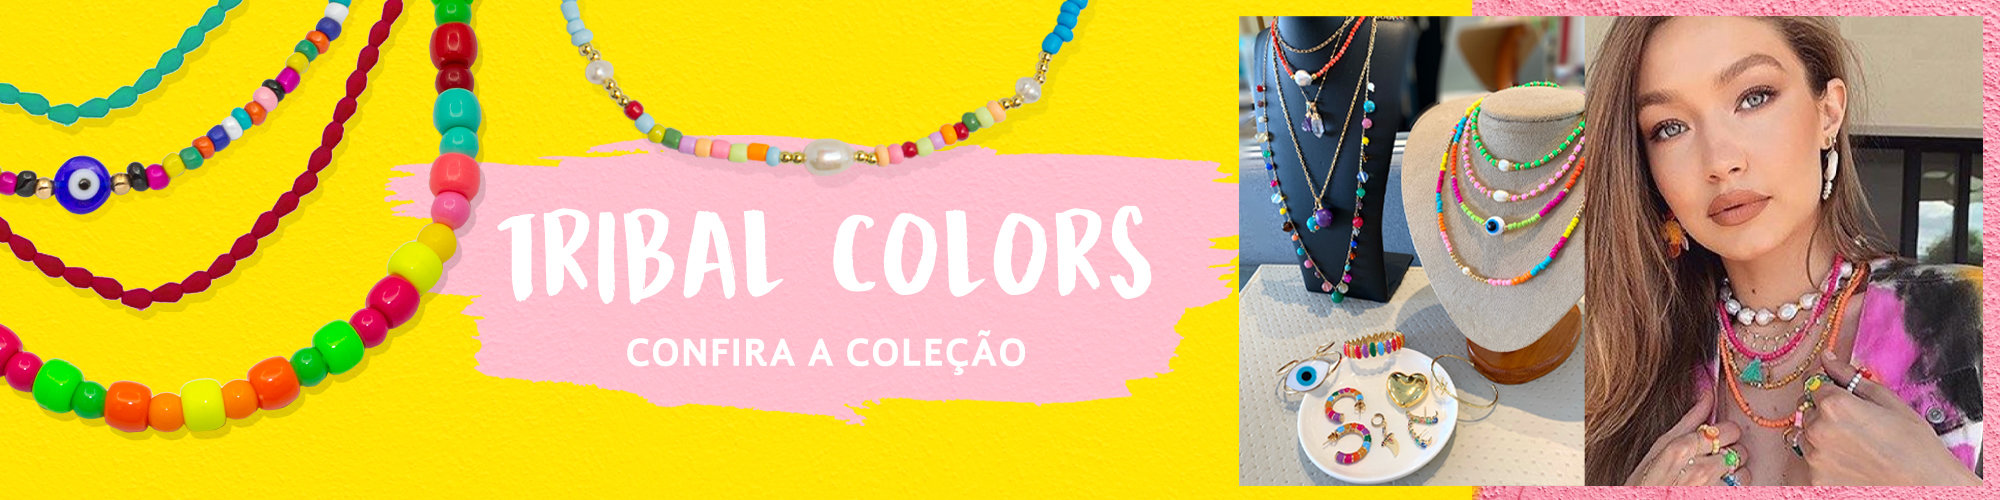 tribo colors